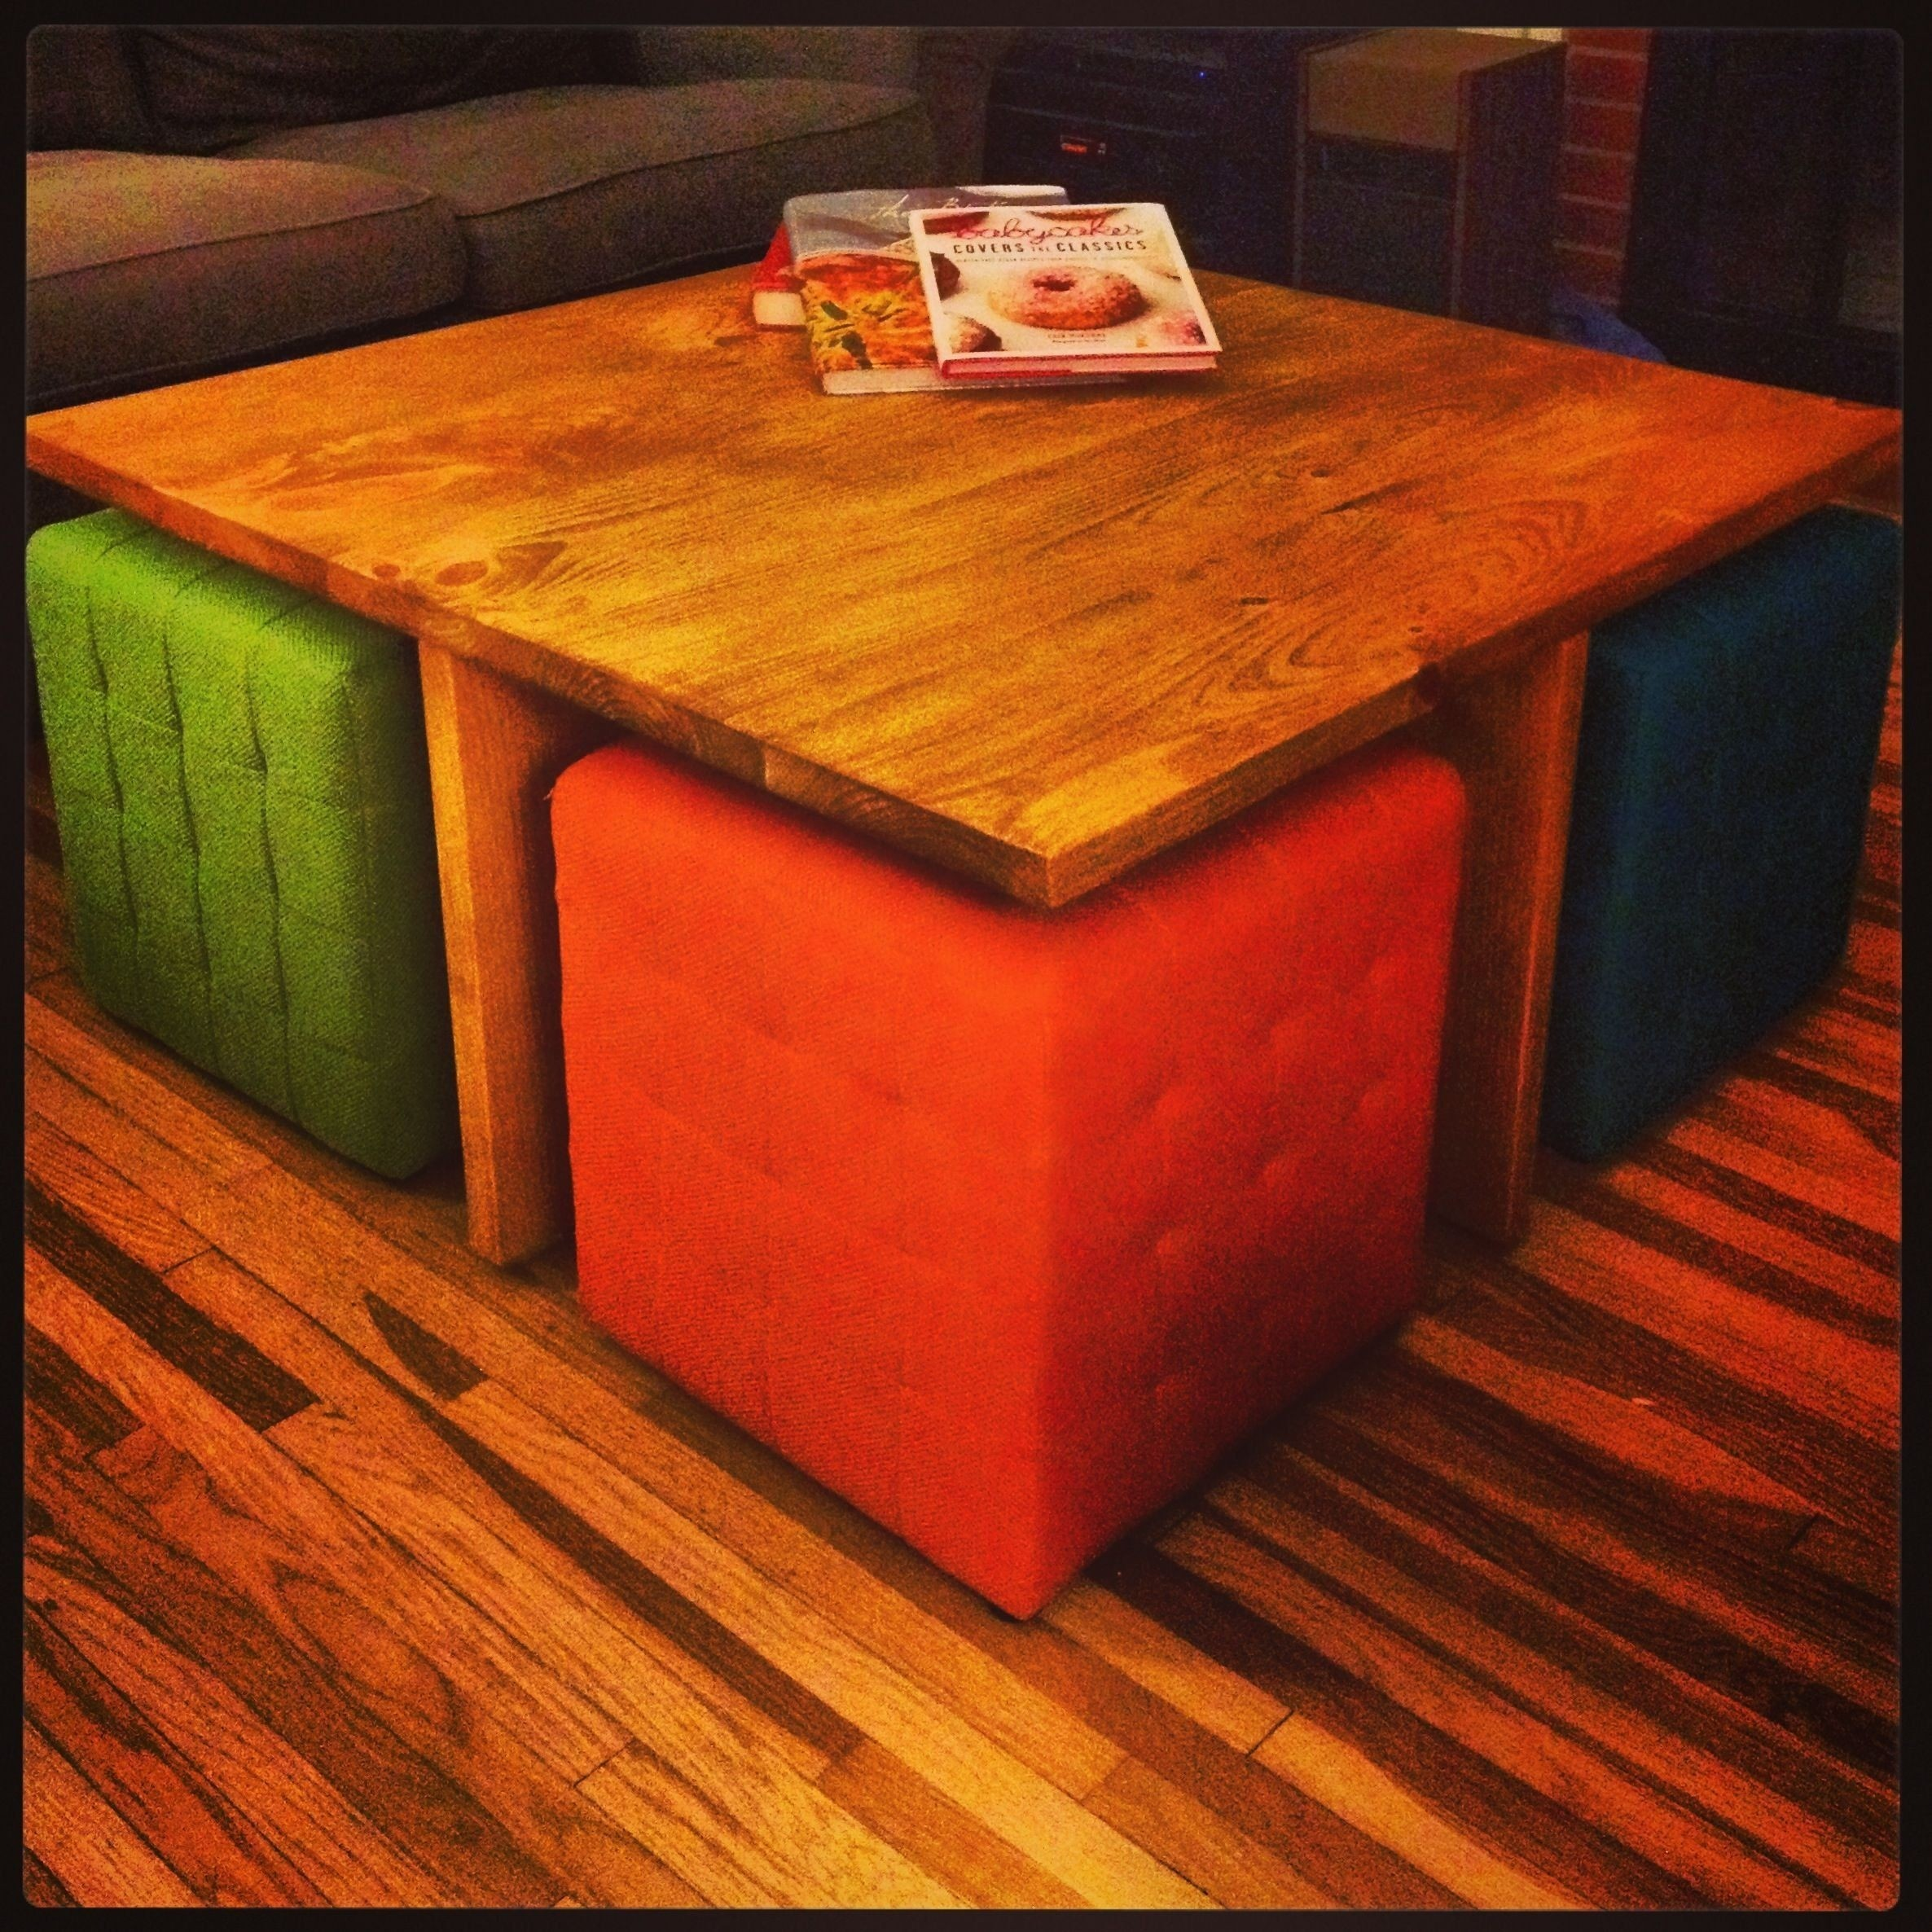 Ottoman With Seating Underneath